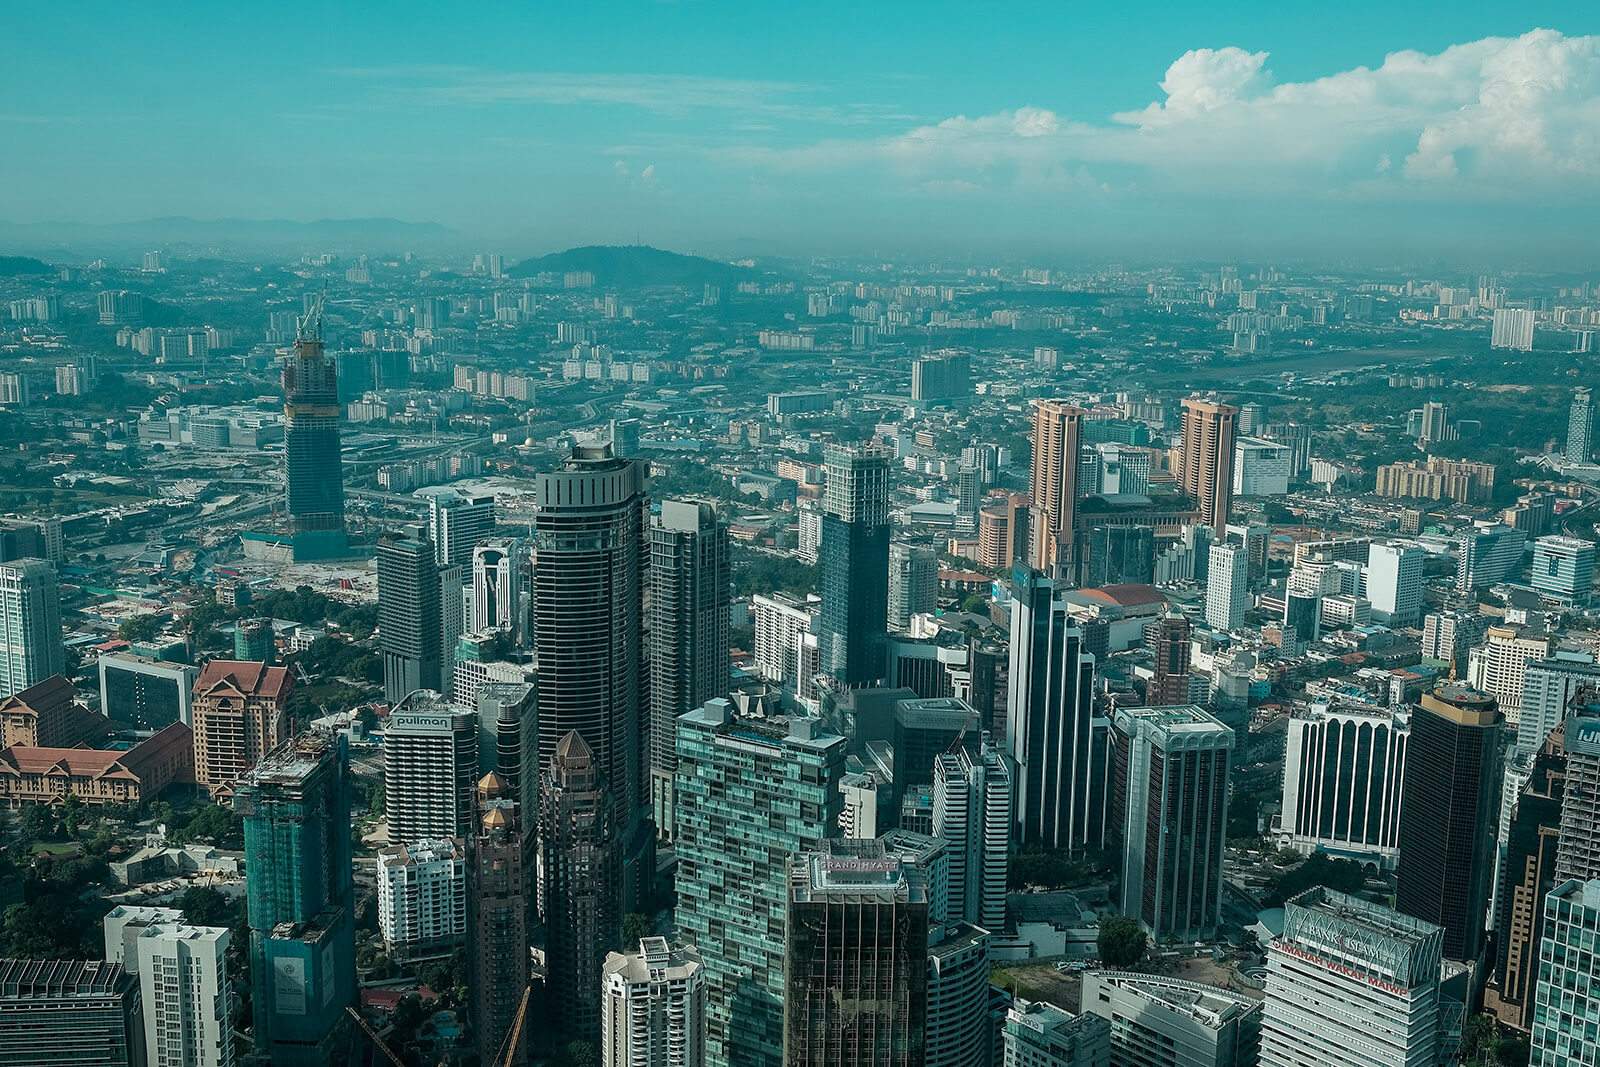 View from the Petronas Twin Towers, one of the top things to do in Kuala Lumpur, Malaysia